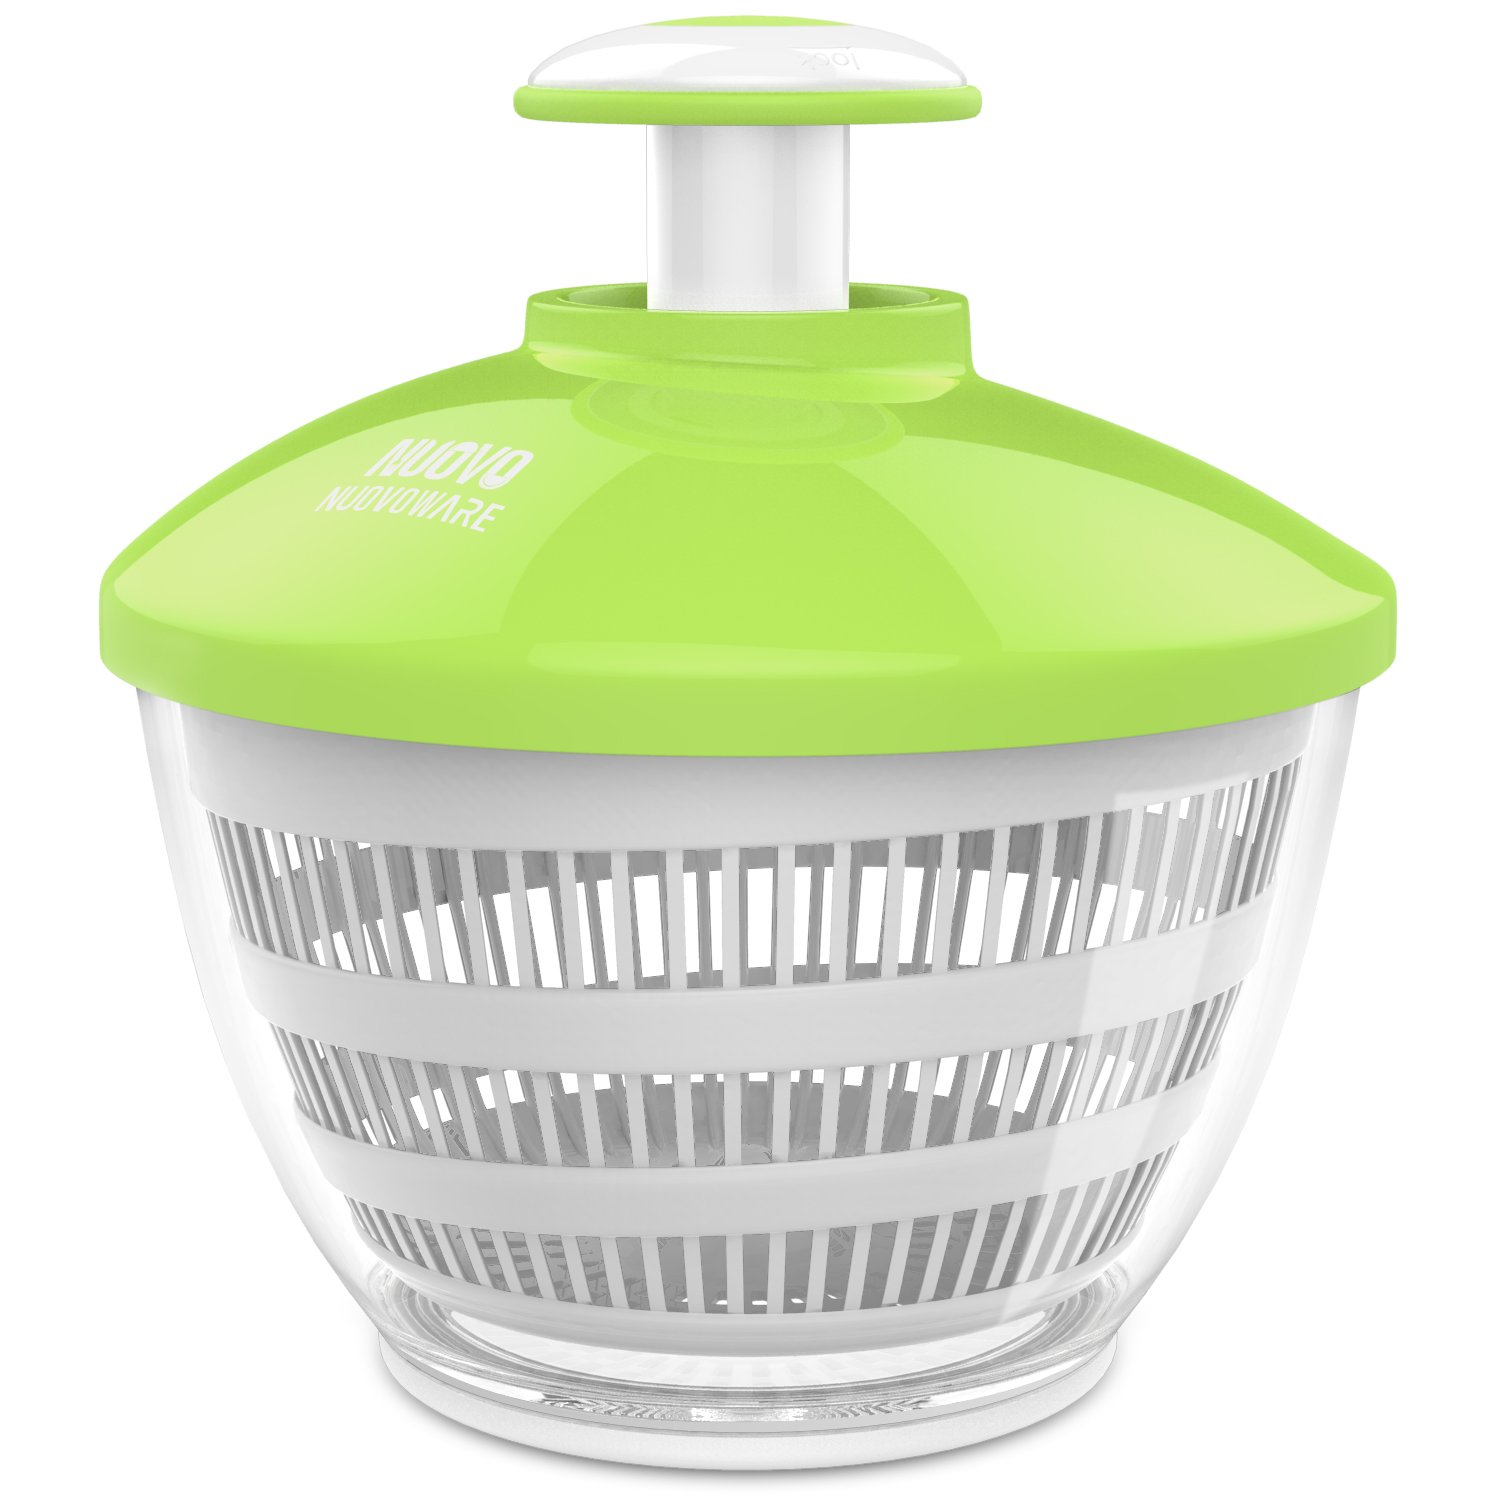 Nuovoware Salad Spinner, Premium Salad Spinner with 3.6 Quart Large Bowl, Paddle Mechanism, Dry Off & Drain Lettuce and Vegetable With Ease and Faster Food Prep, White & Green